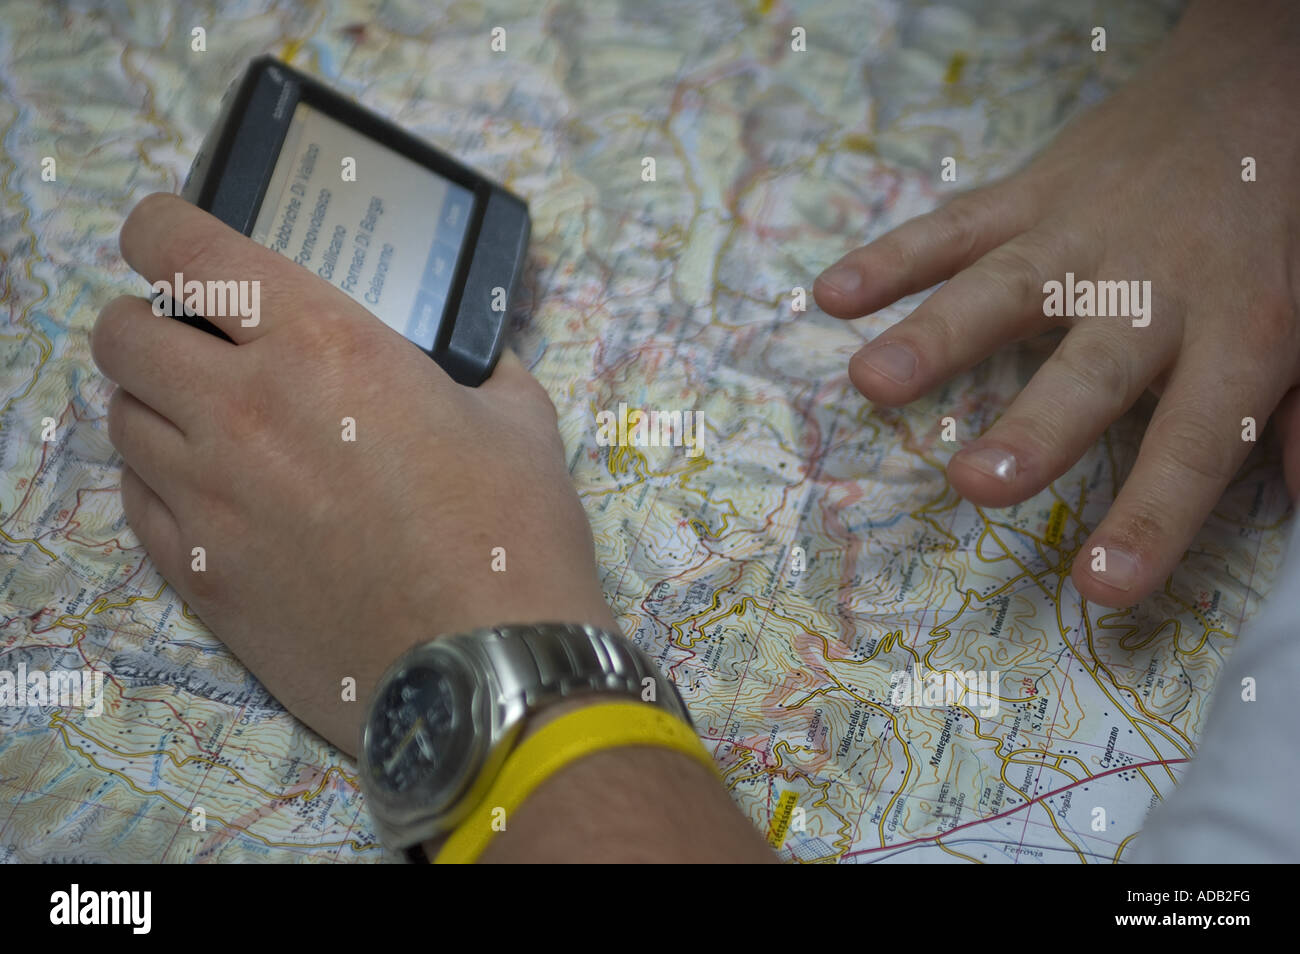 Planning Days Travelling With Tom-Tom Sat Nav And Map - Stock Image